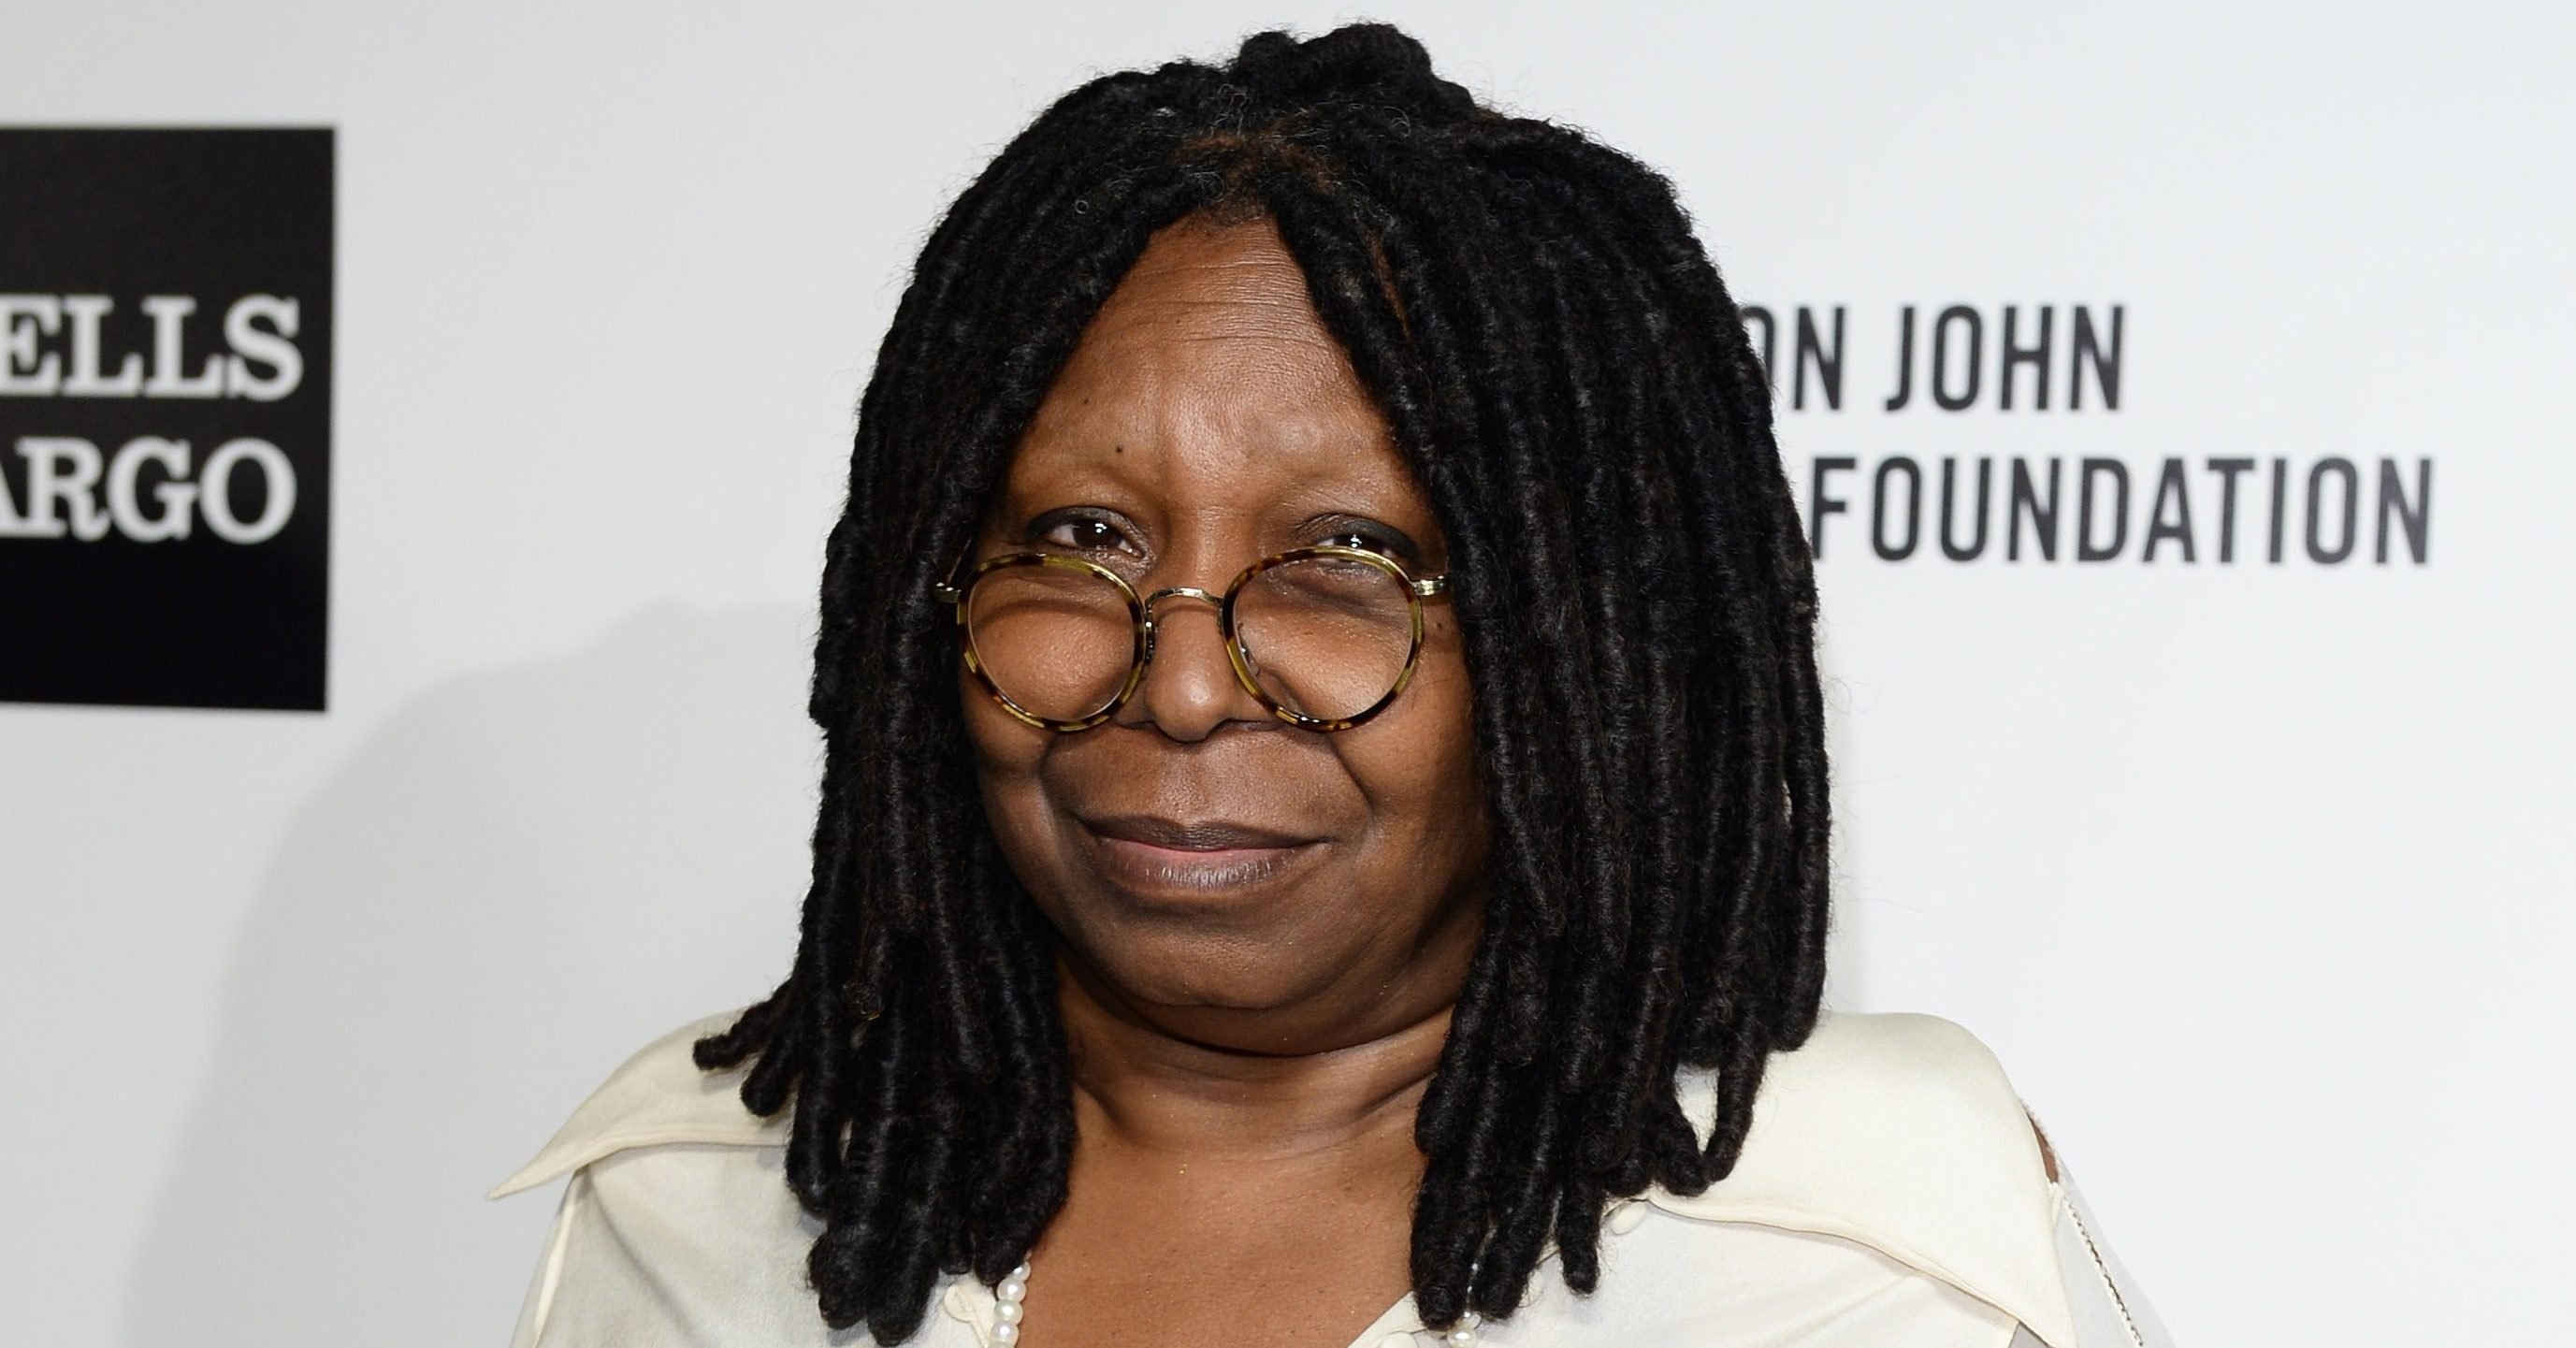 ABC's Jermaine Fowler Comedy to Star Whoopi Goldberg